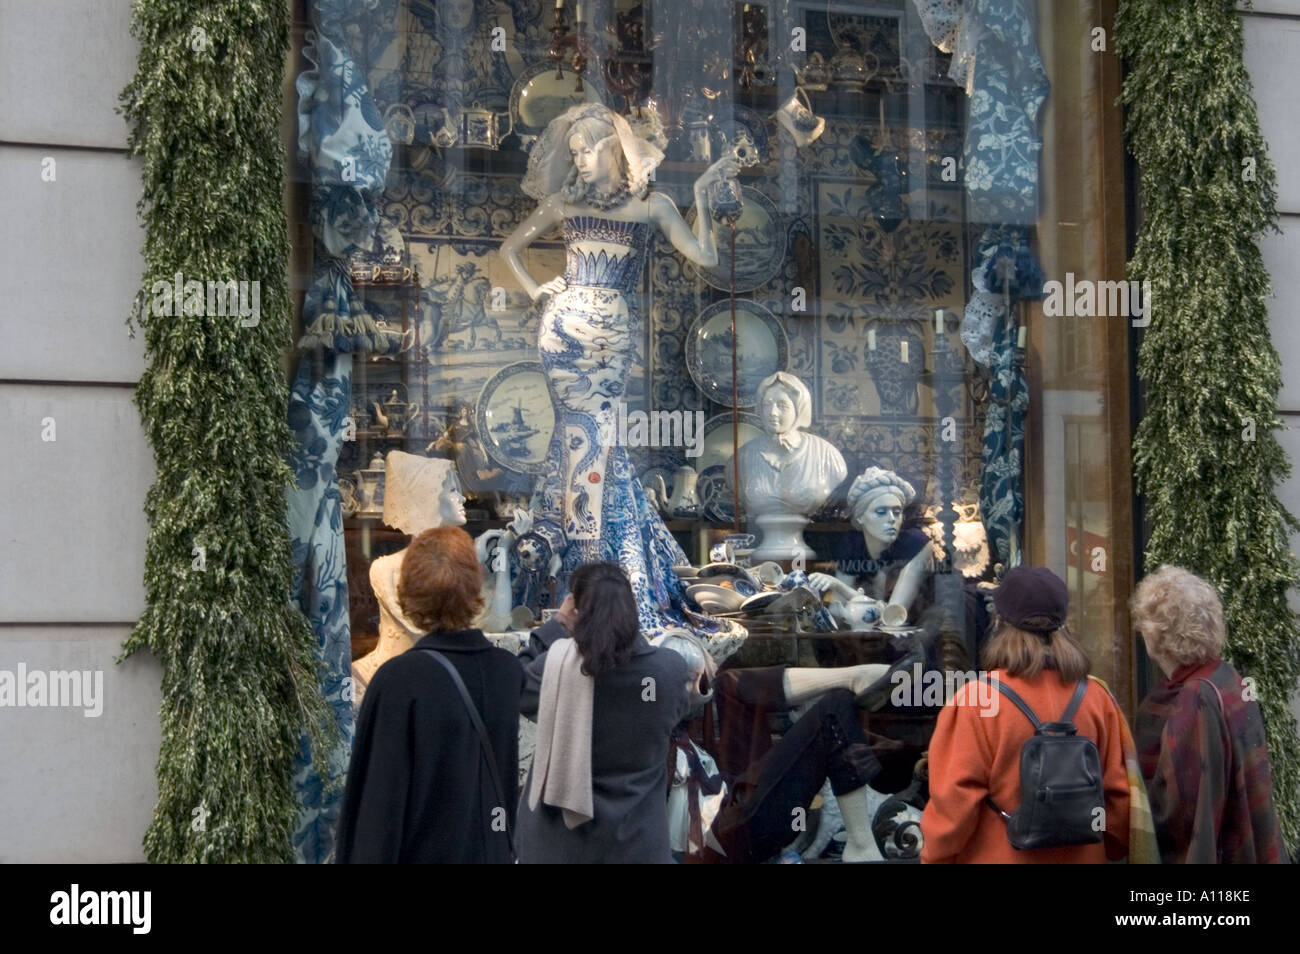 New York Visitors Admire Christmas Decorations Displayed In Store Window In  Central Manhattan New York City USA 24 December 2005